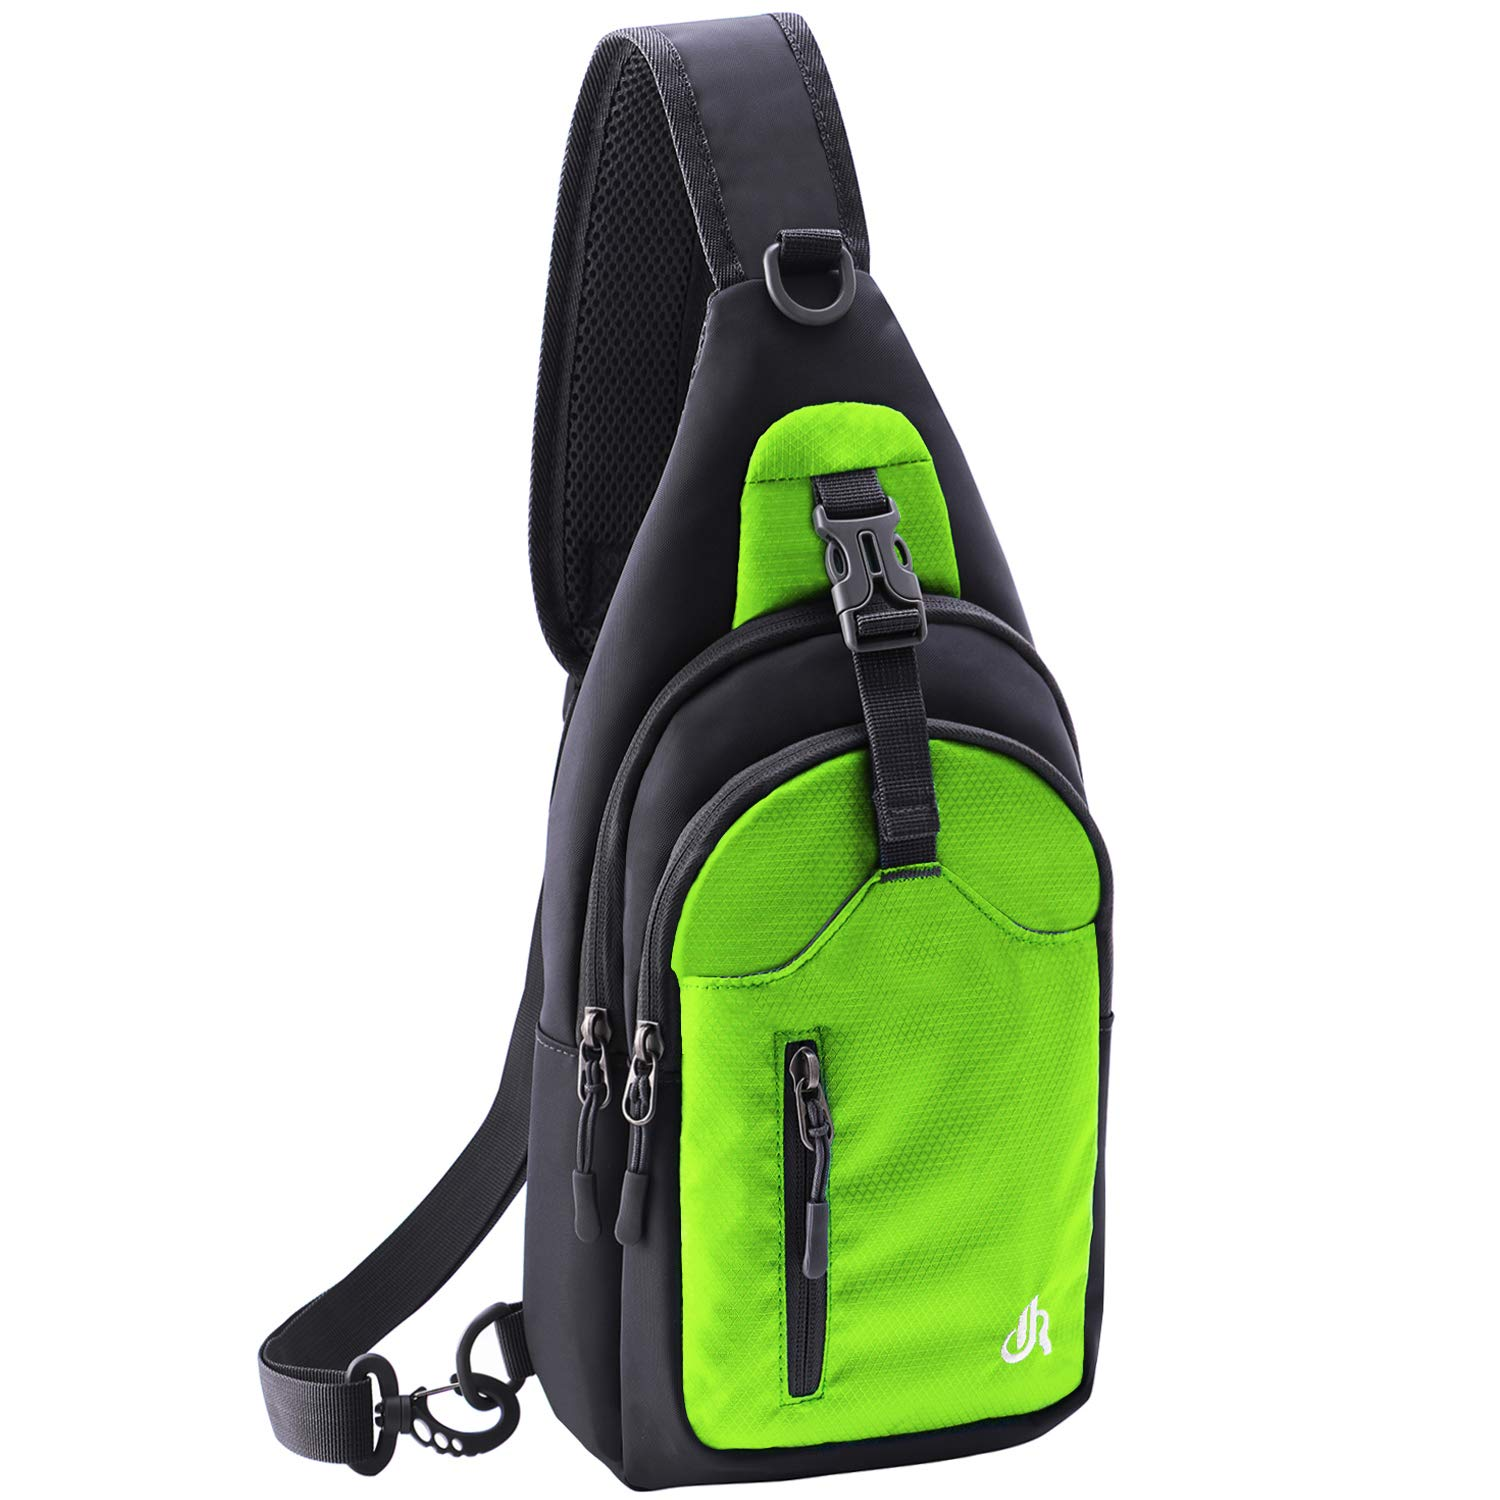 Great lightweight backpack